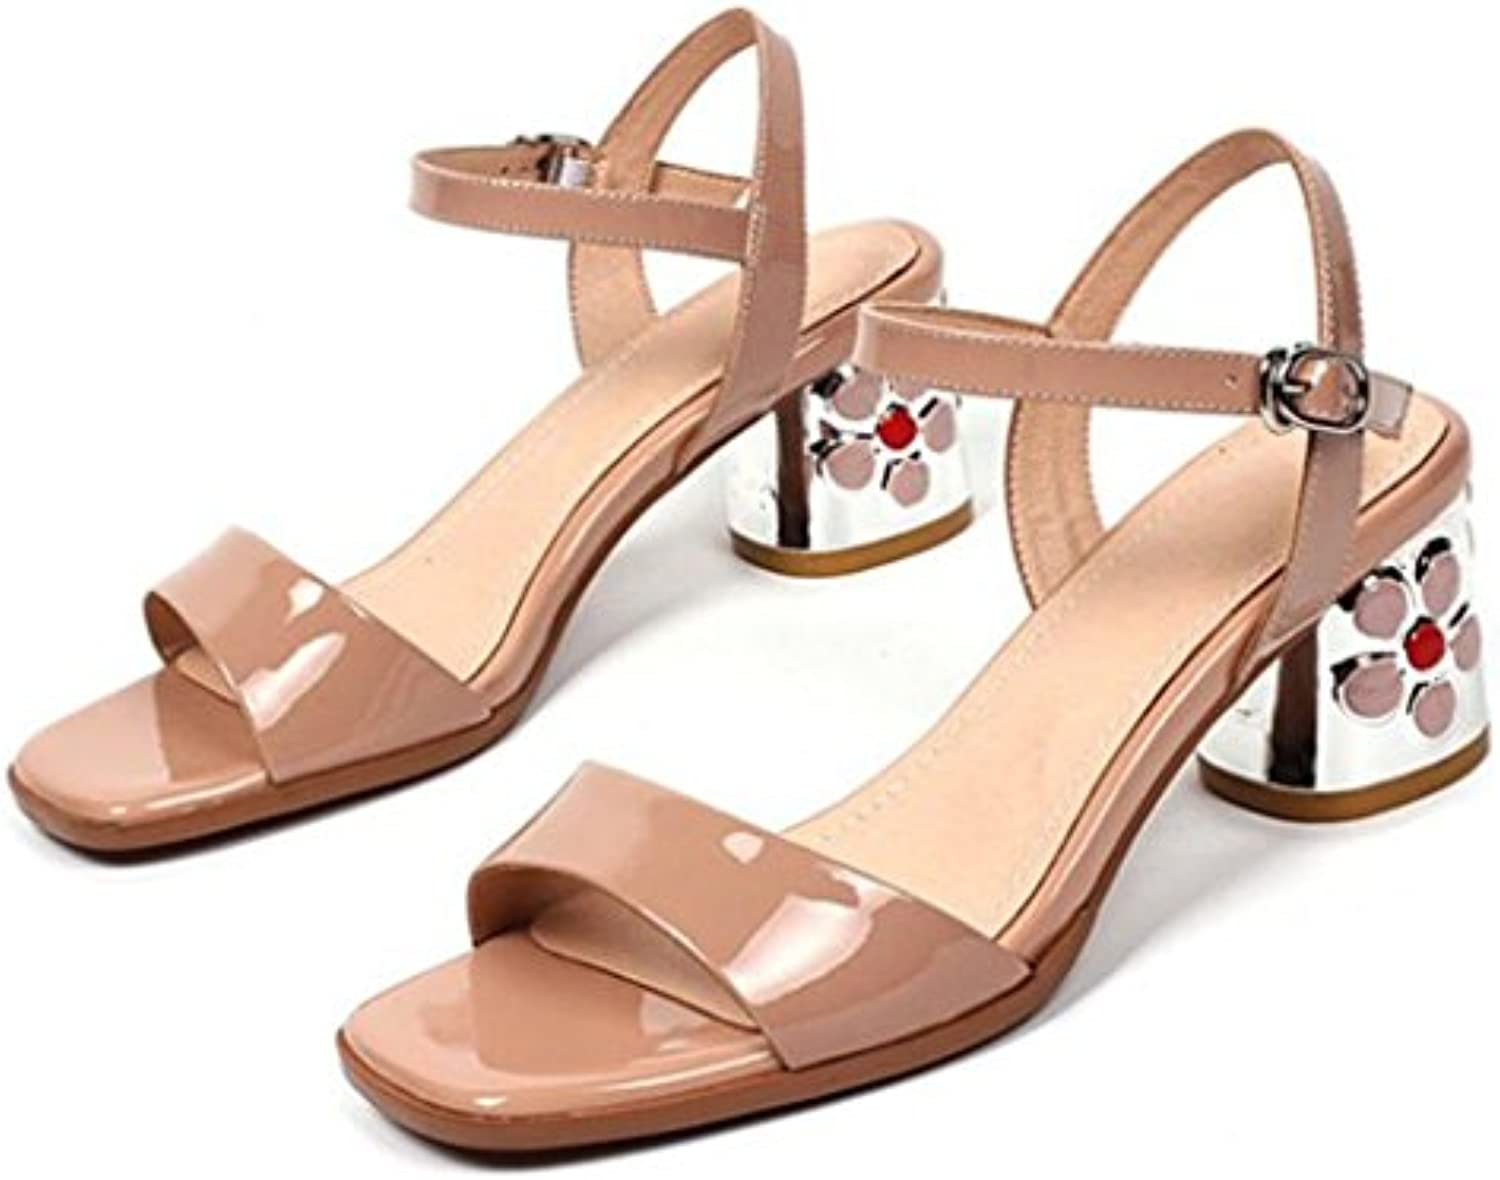 GAOLIXIA Frauen Leder T-strap Open Toe Sandalen Pumps Sommer Blumen Riemchen High Heels Fashion Party Bankettö